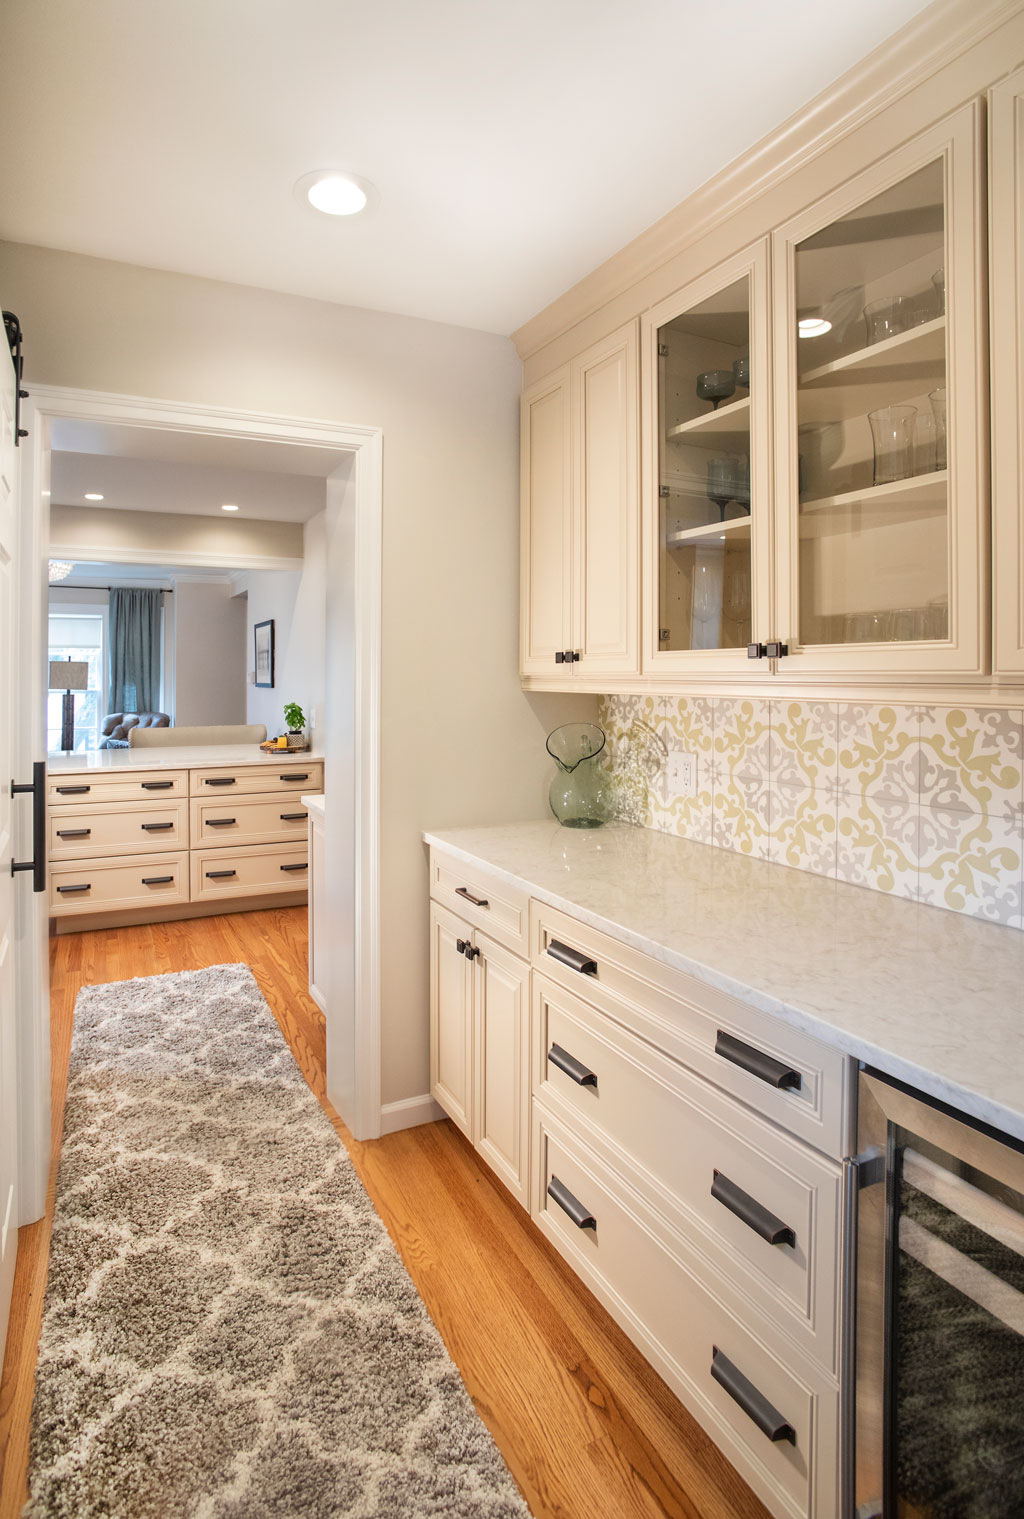 Roeser-Home-Remodeling-St-Louis-pantry-Gibbs